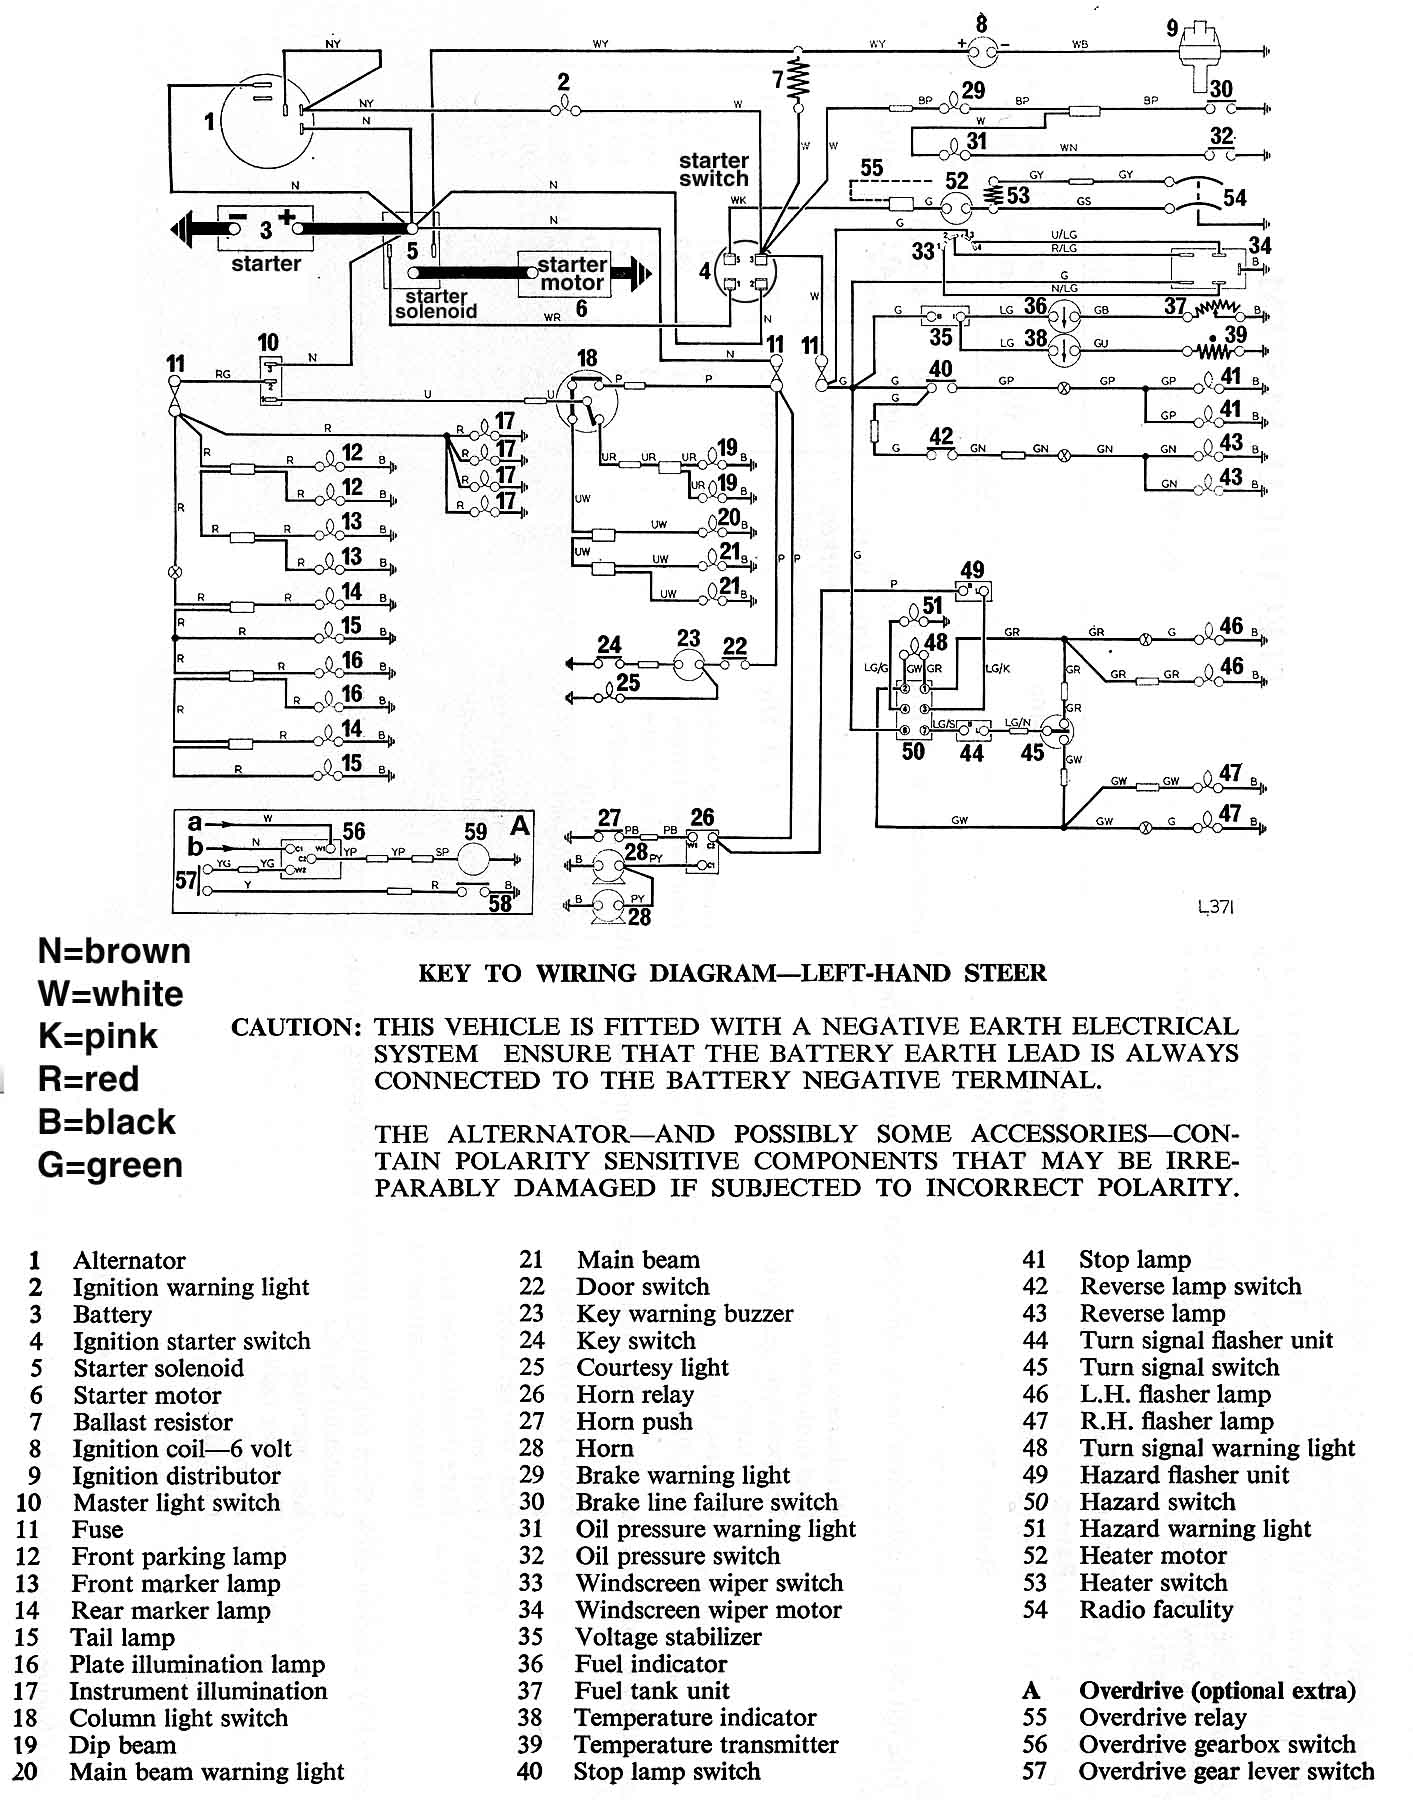 MKIVwire wiring schematics and diagrams triumph spitfire, gt6, herald 1978 triumph spitfire wiring diagram at alyssarenee.co